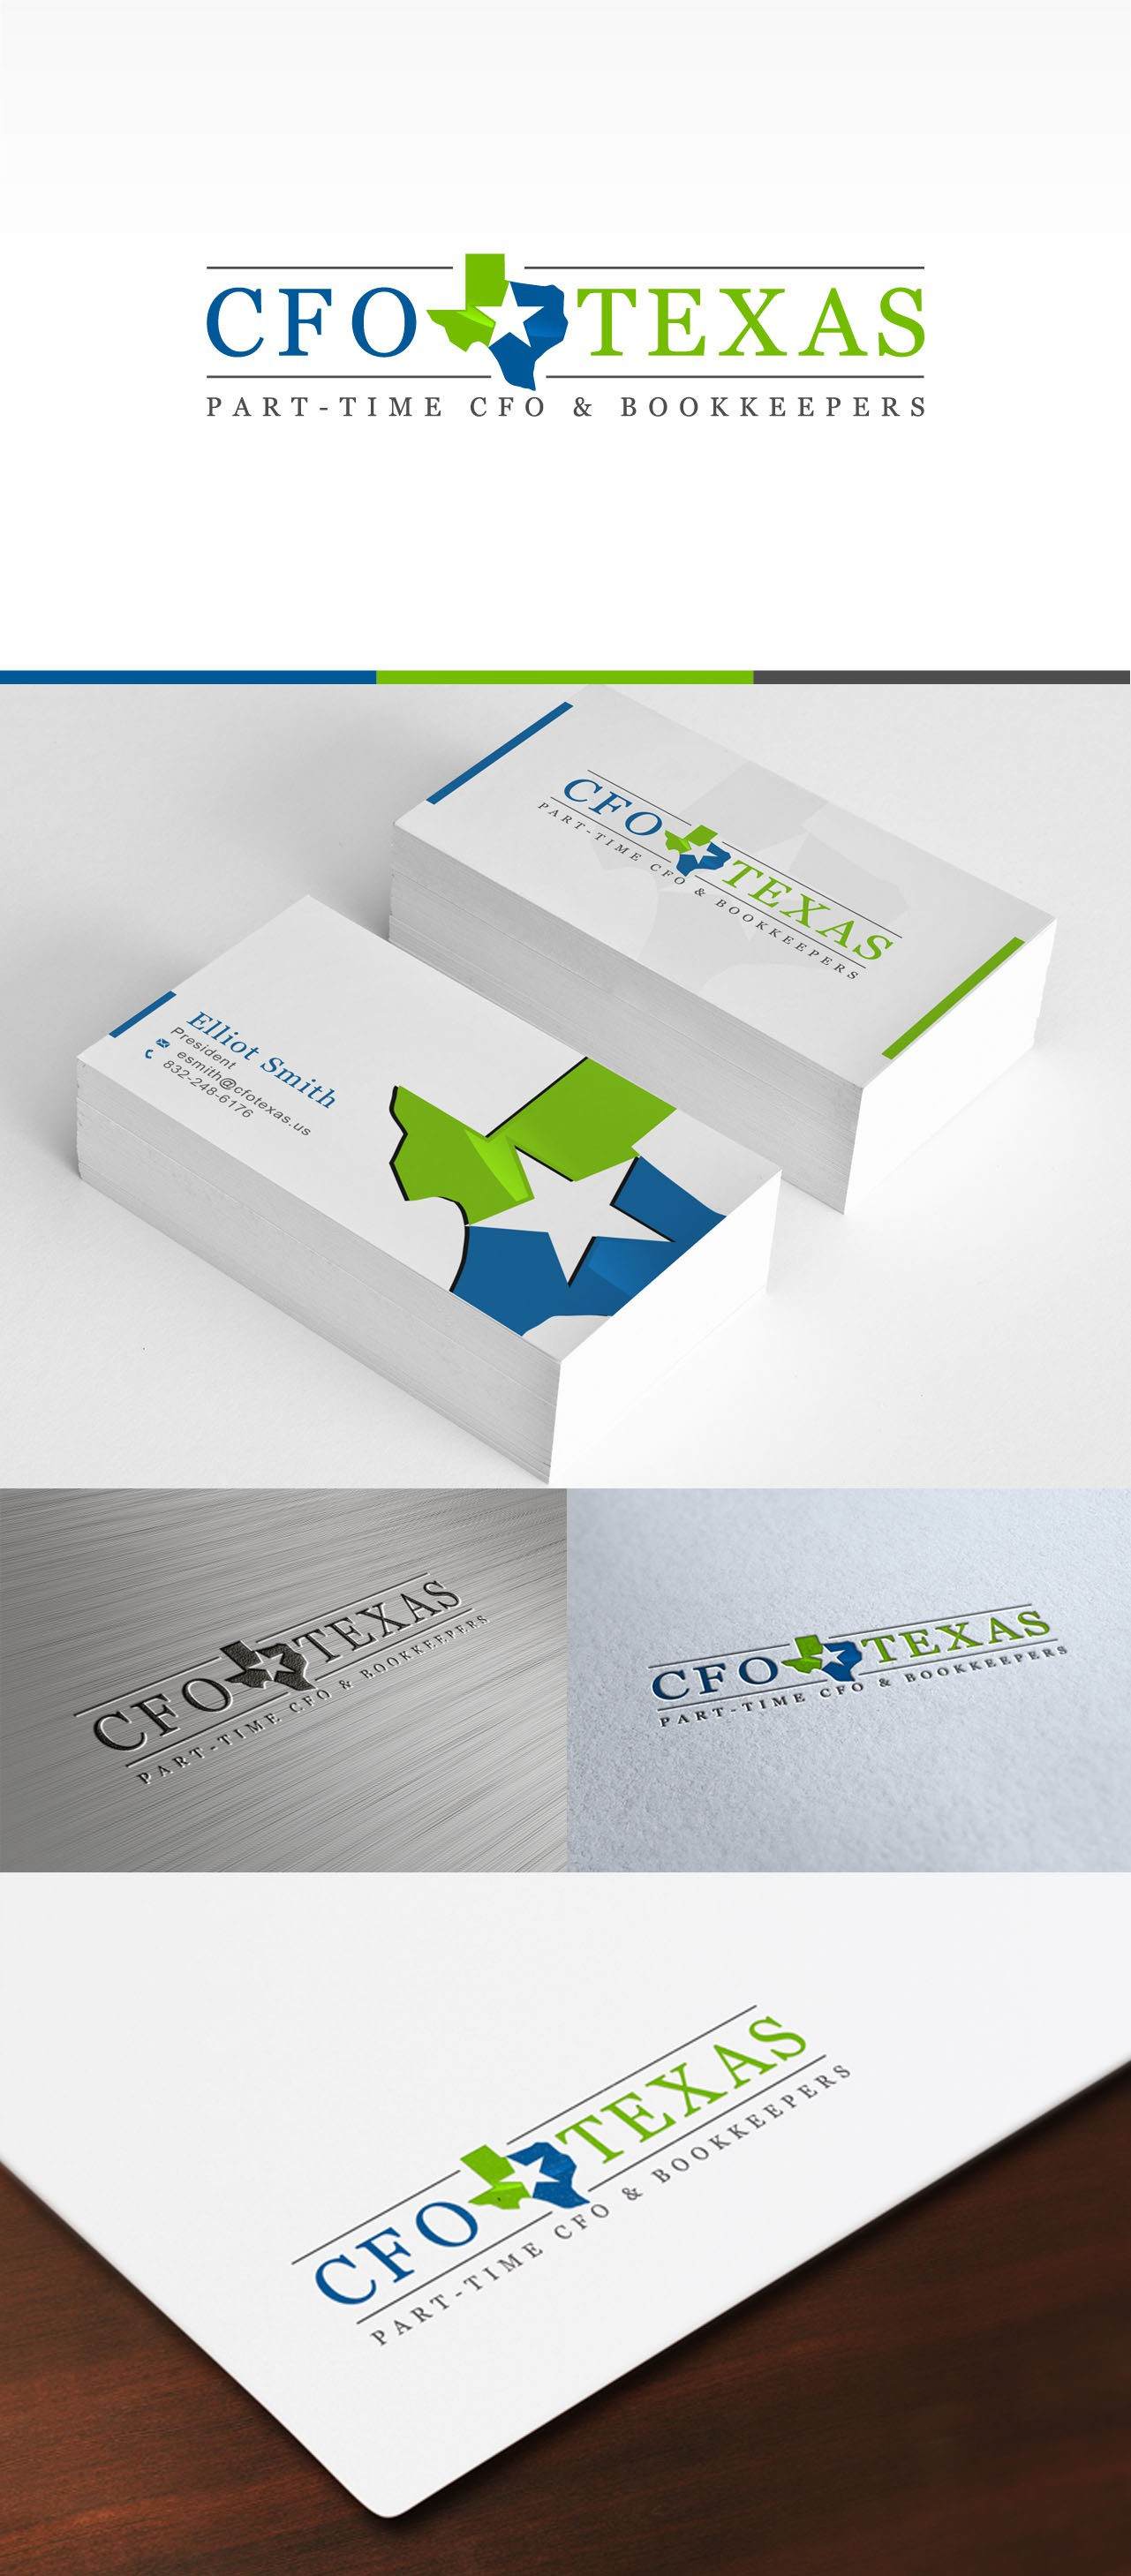 CFO Texas needs a logo! Will your design be the one?